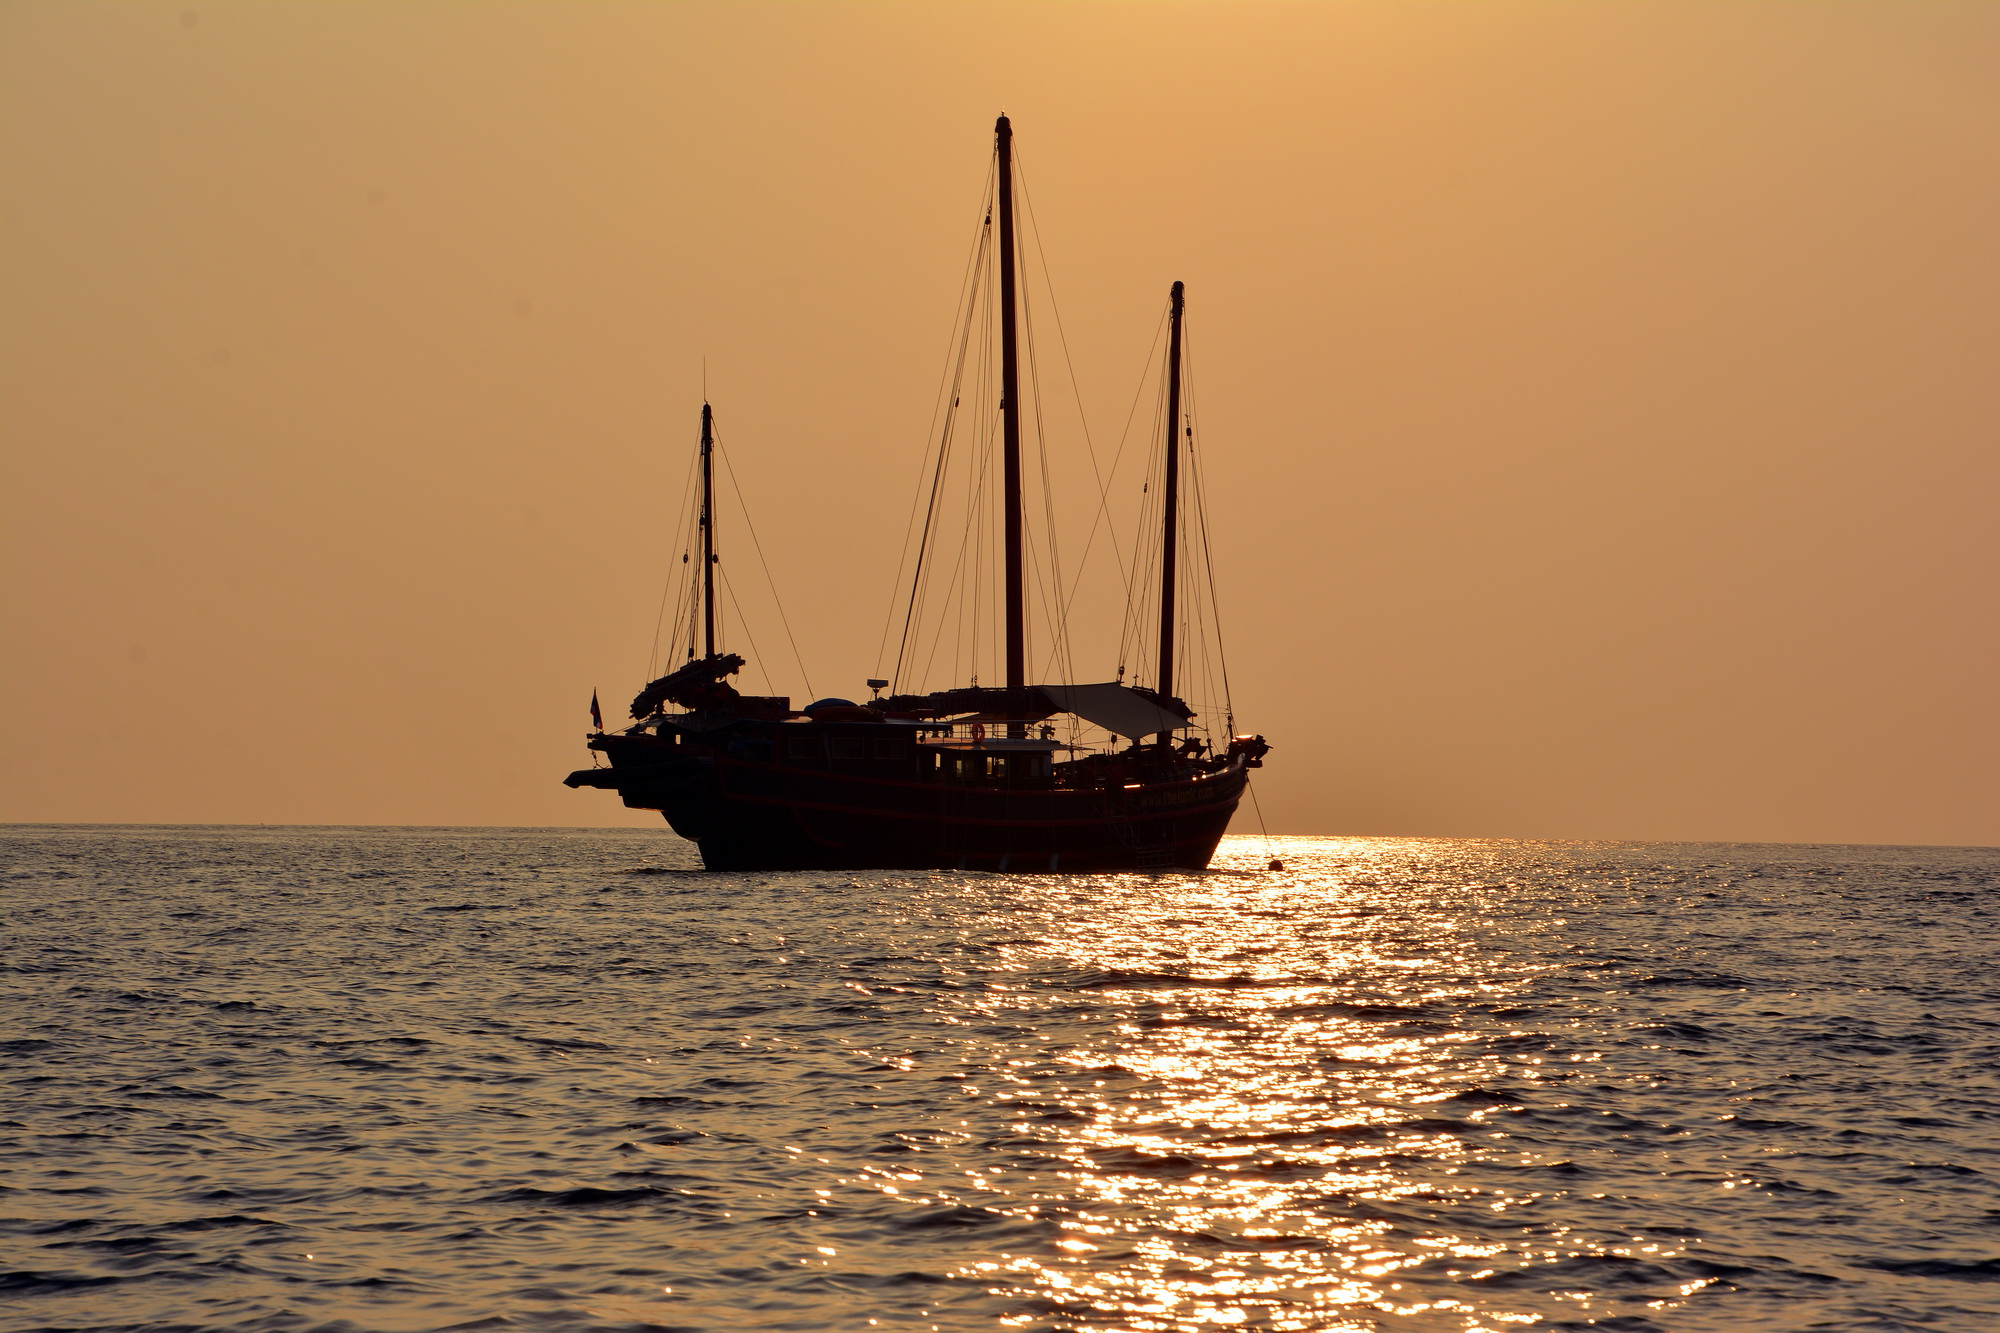 20% off the Junk Similan liveaboard in March 2019